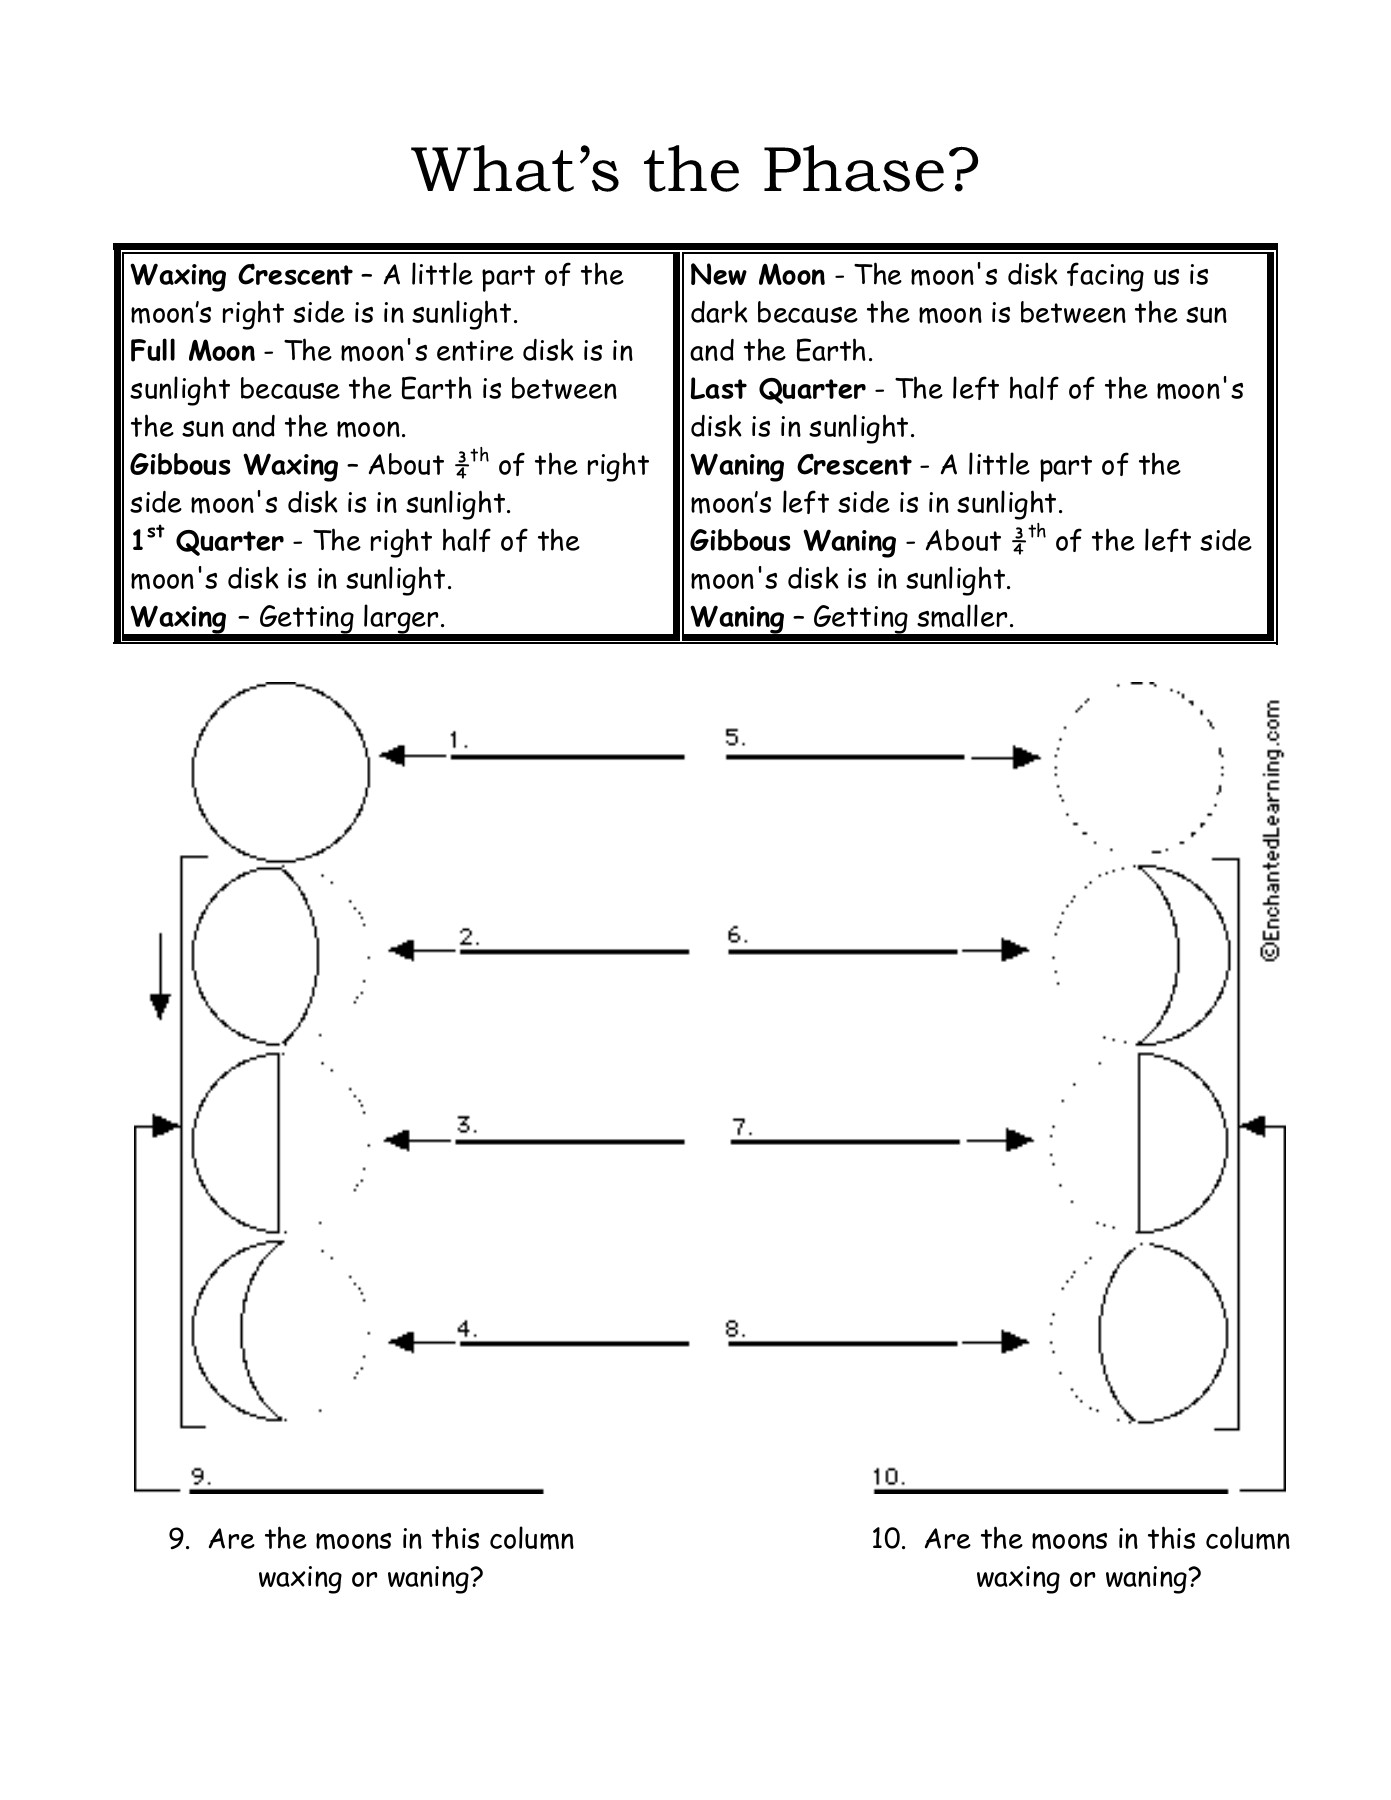 hight resolution of Name Identifying Phases of the Moon - mrscienceut.net-Flip eBook Pages 1 -  6  AnyFlip   AnyFlip